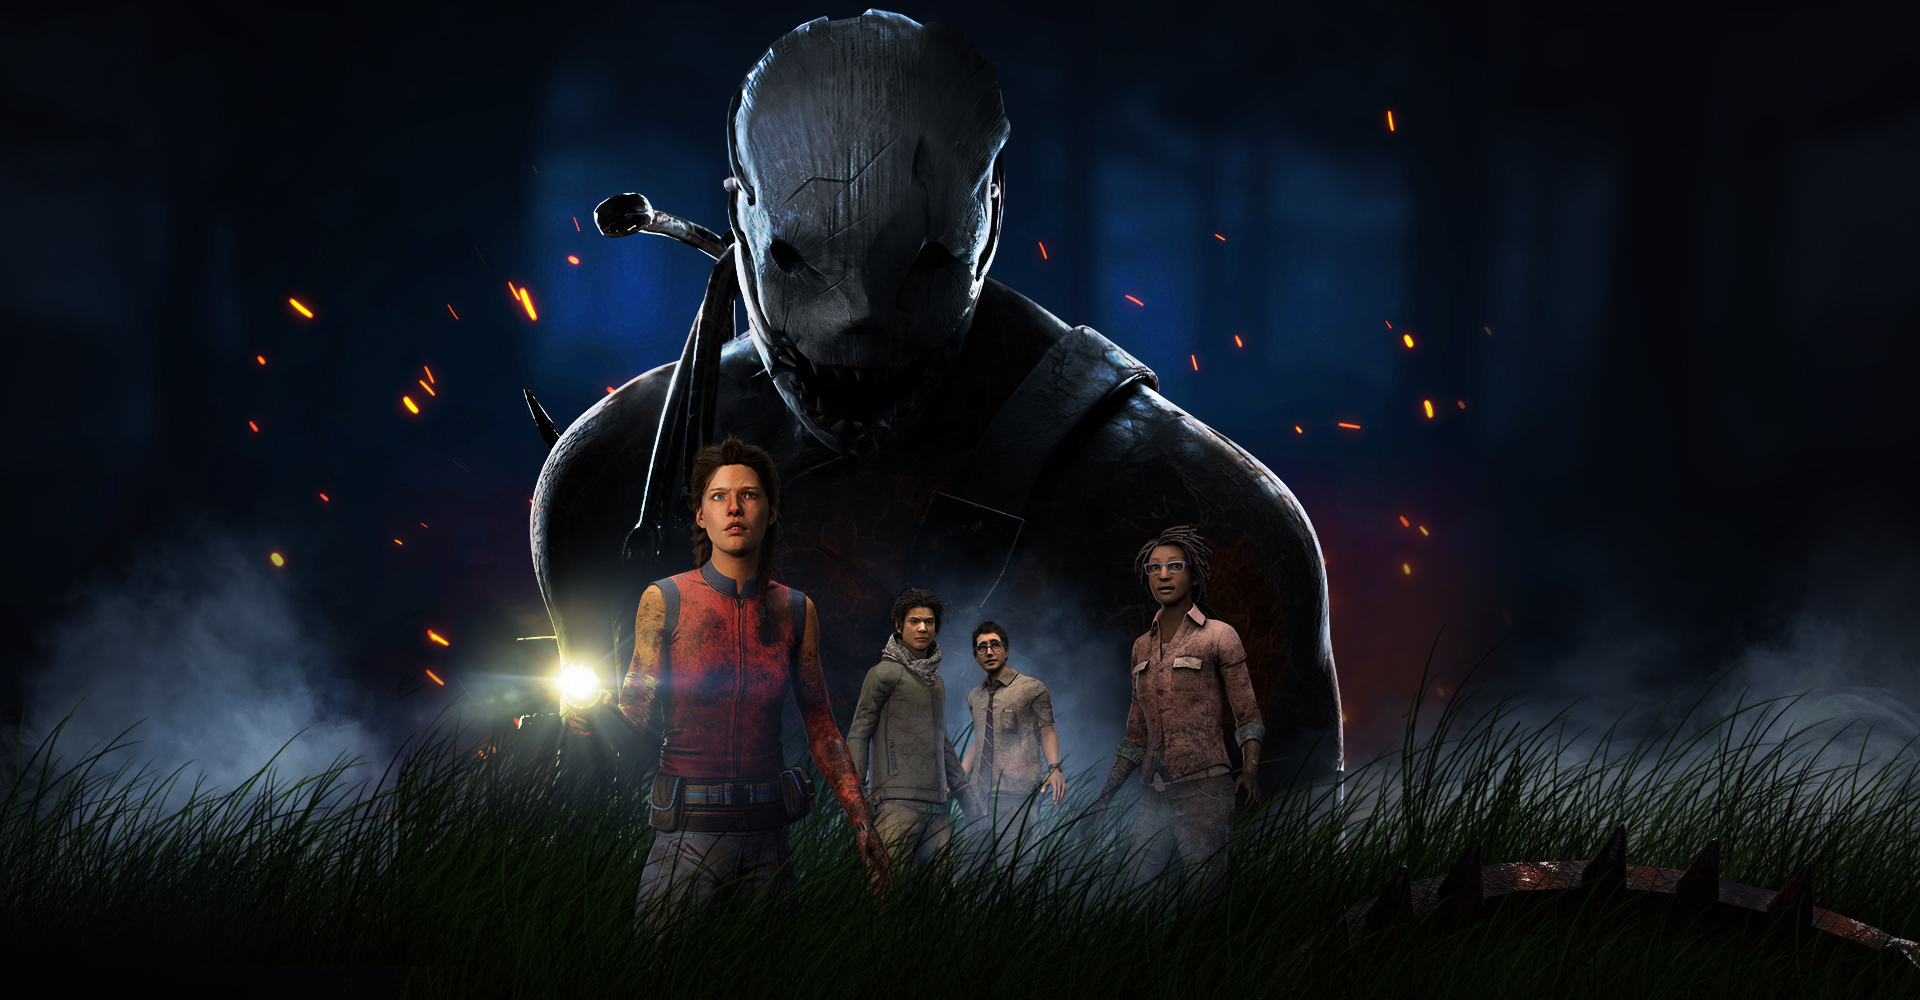 Dead by Daylight 2.12 Update Patch Notes